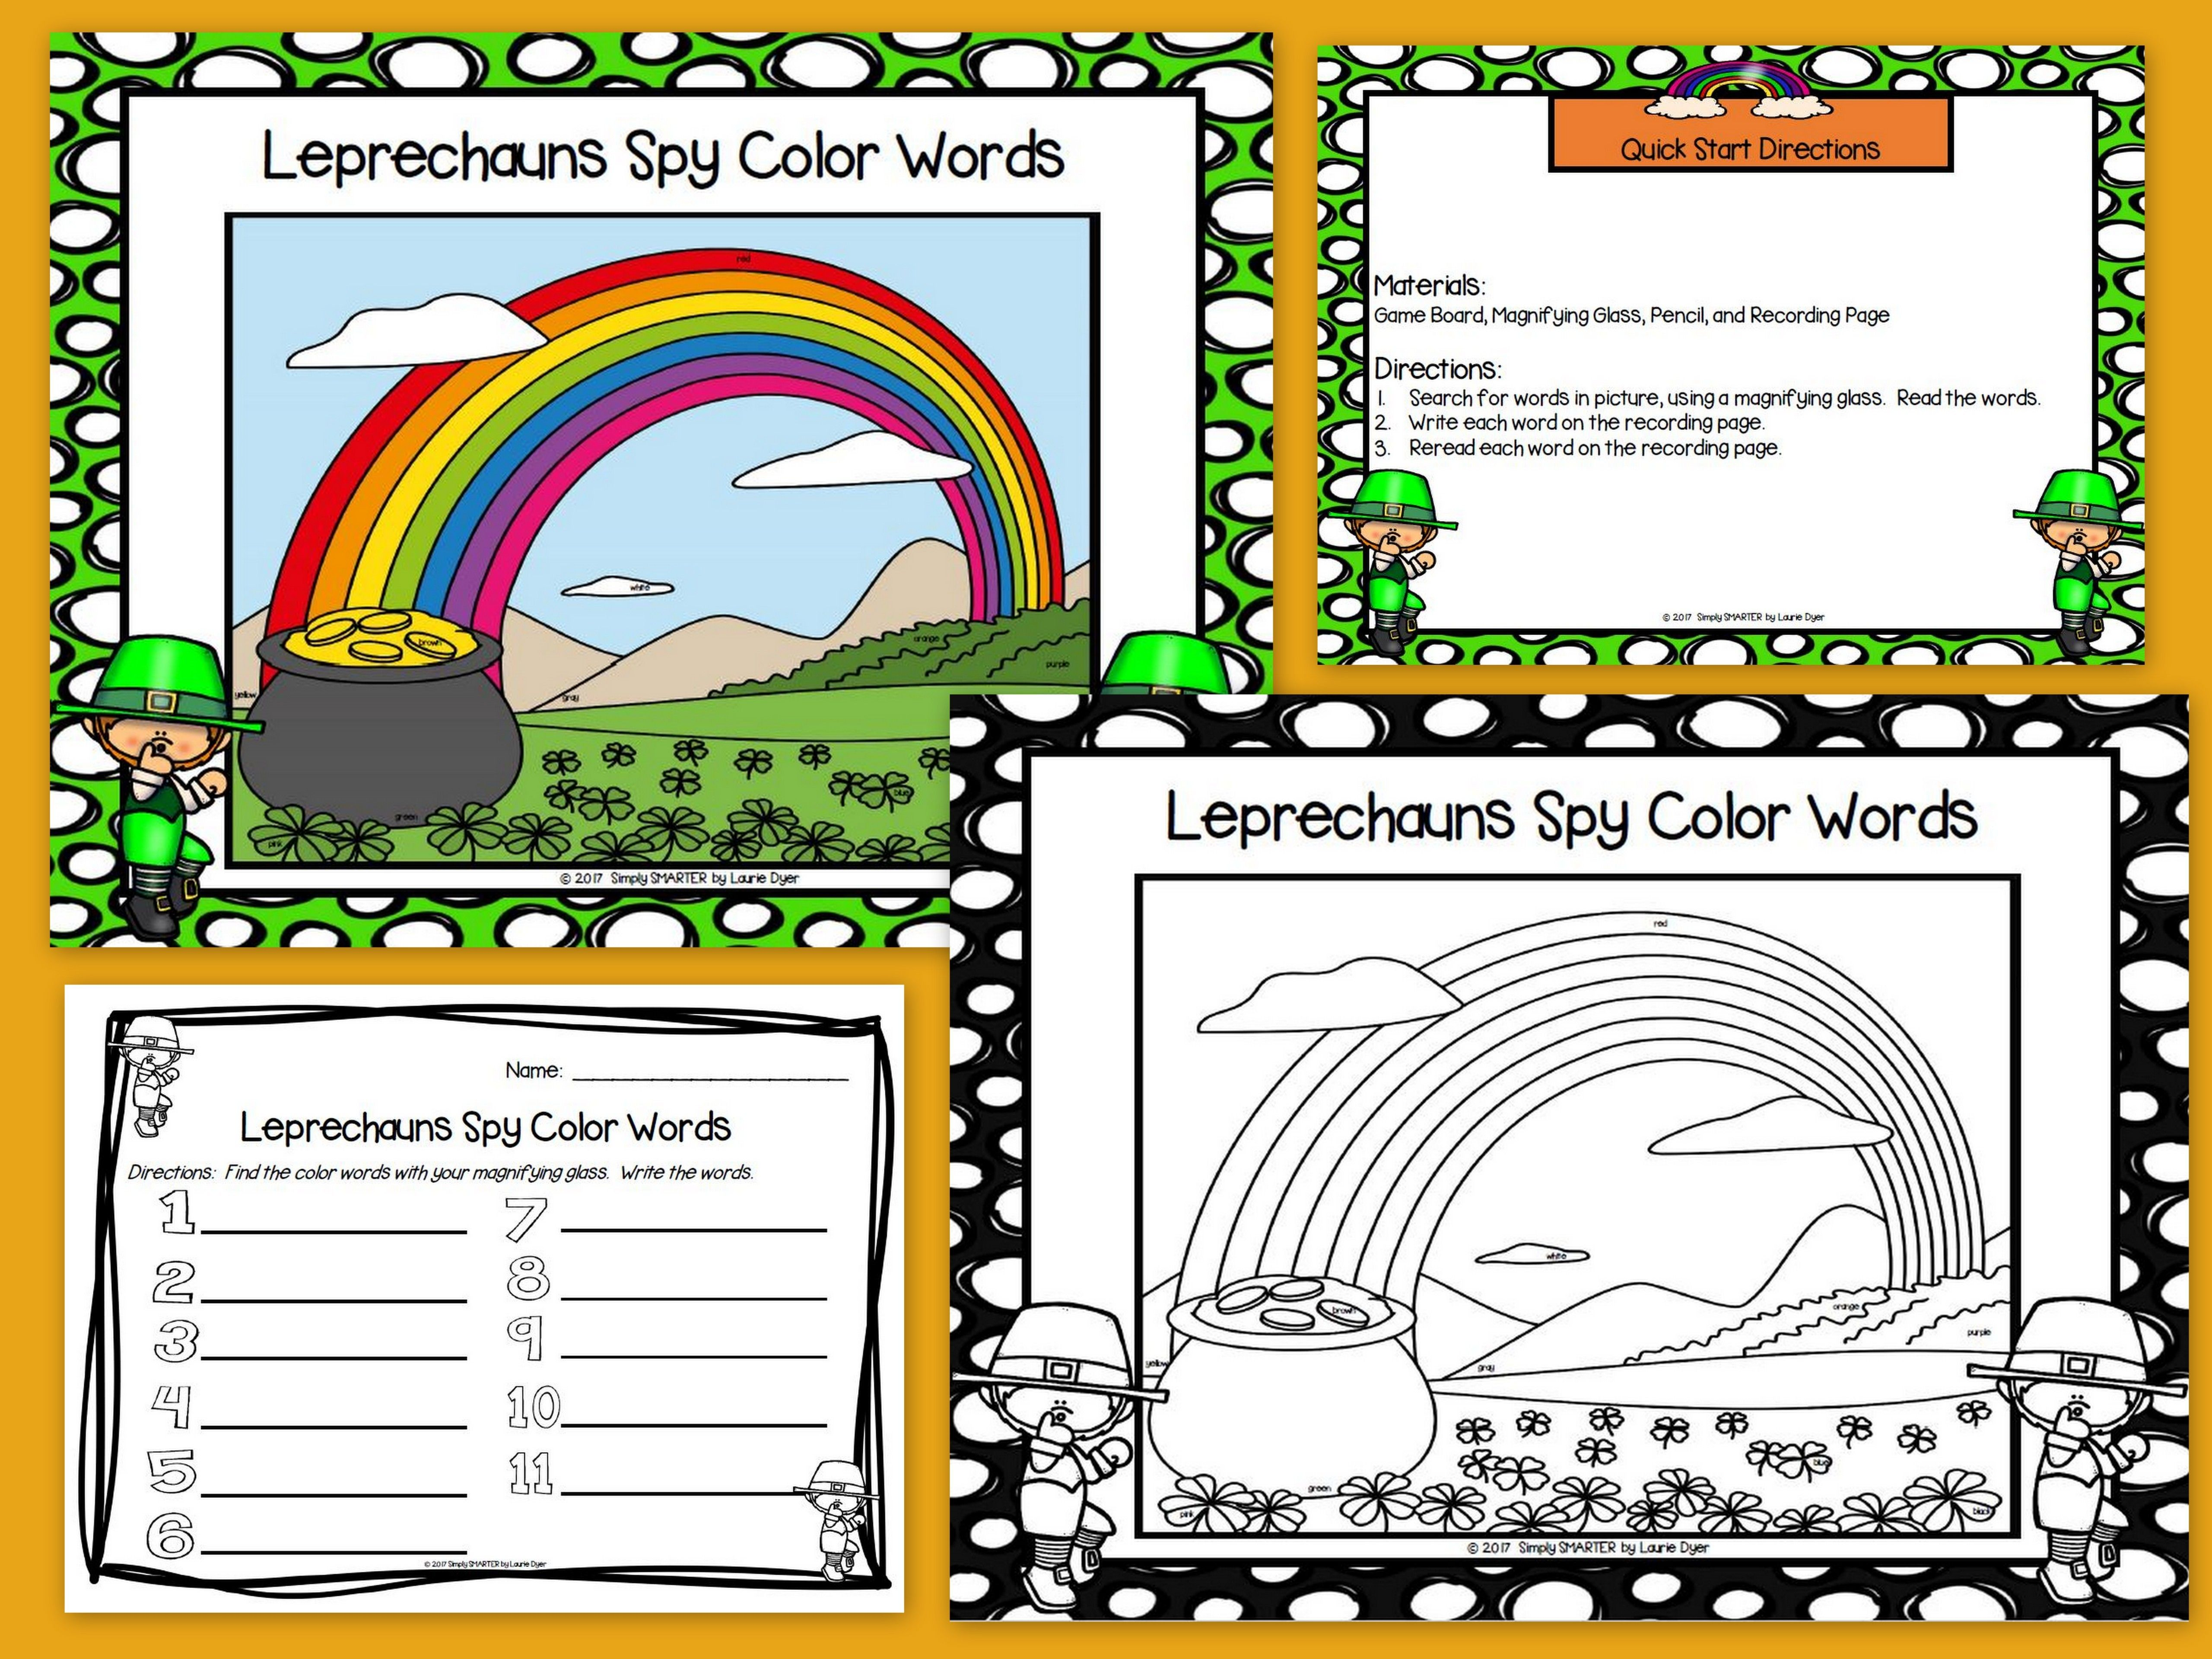 Leprechauns Spy Color Words No Prep I Spy Game